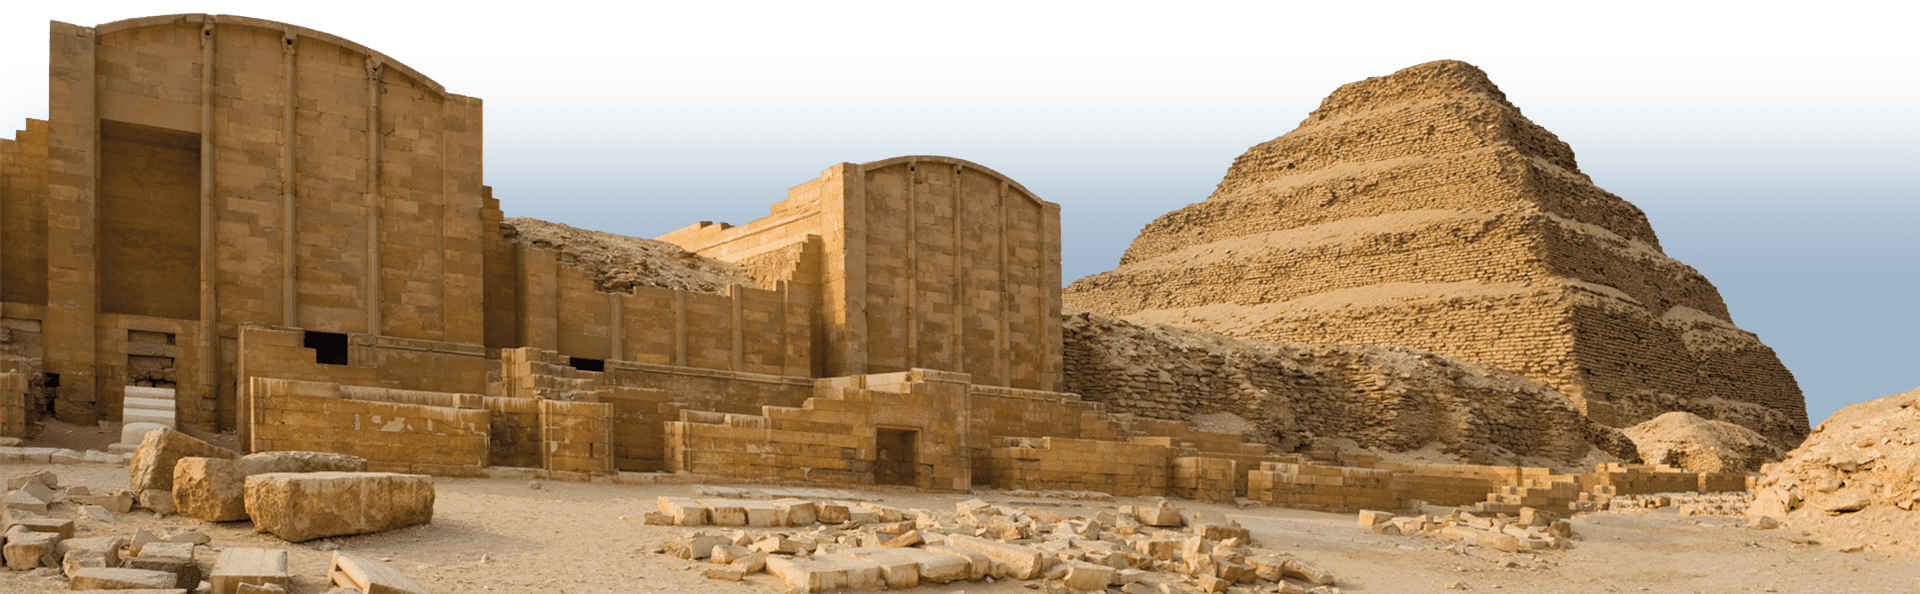 Sakkara, Egypt, Pyramid Explorer, Ancient World Tours SELLING